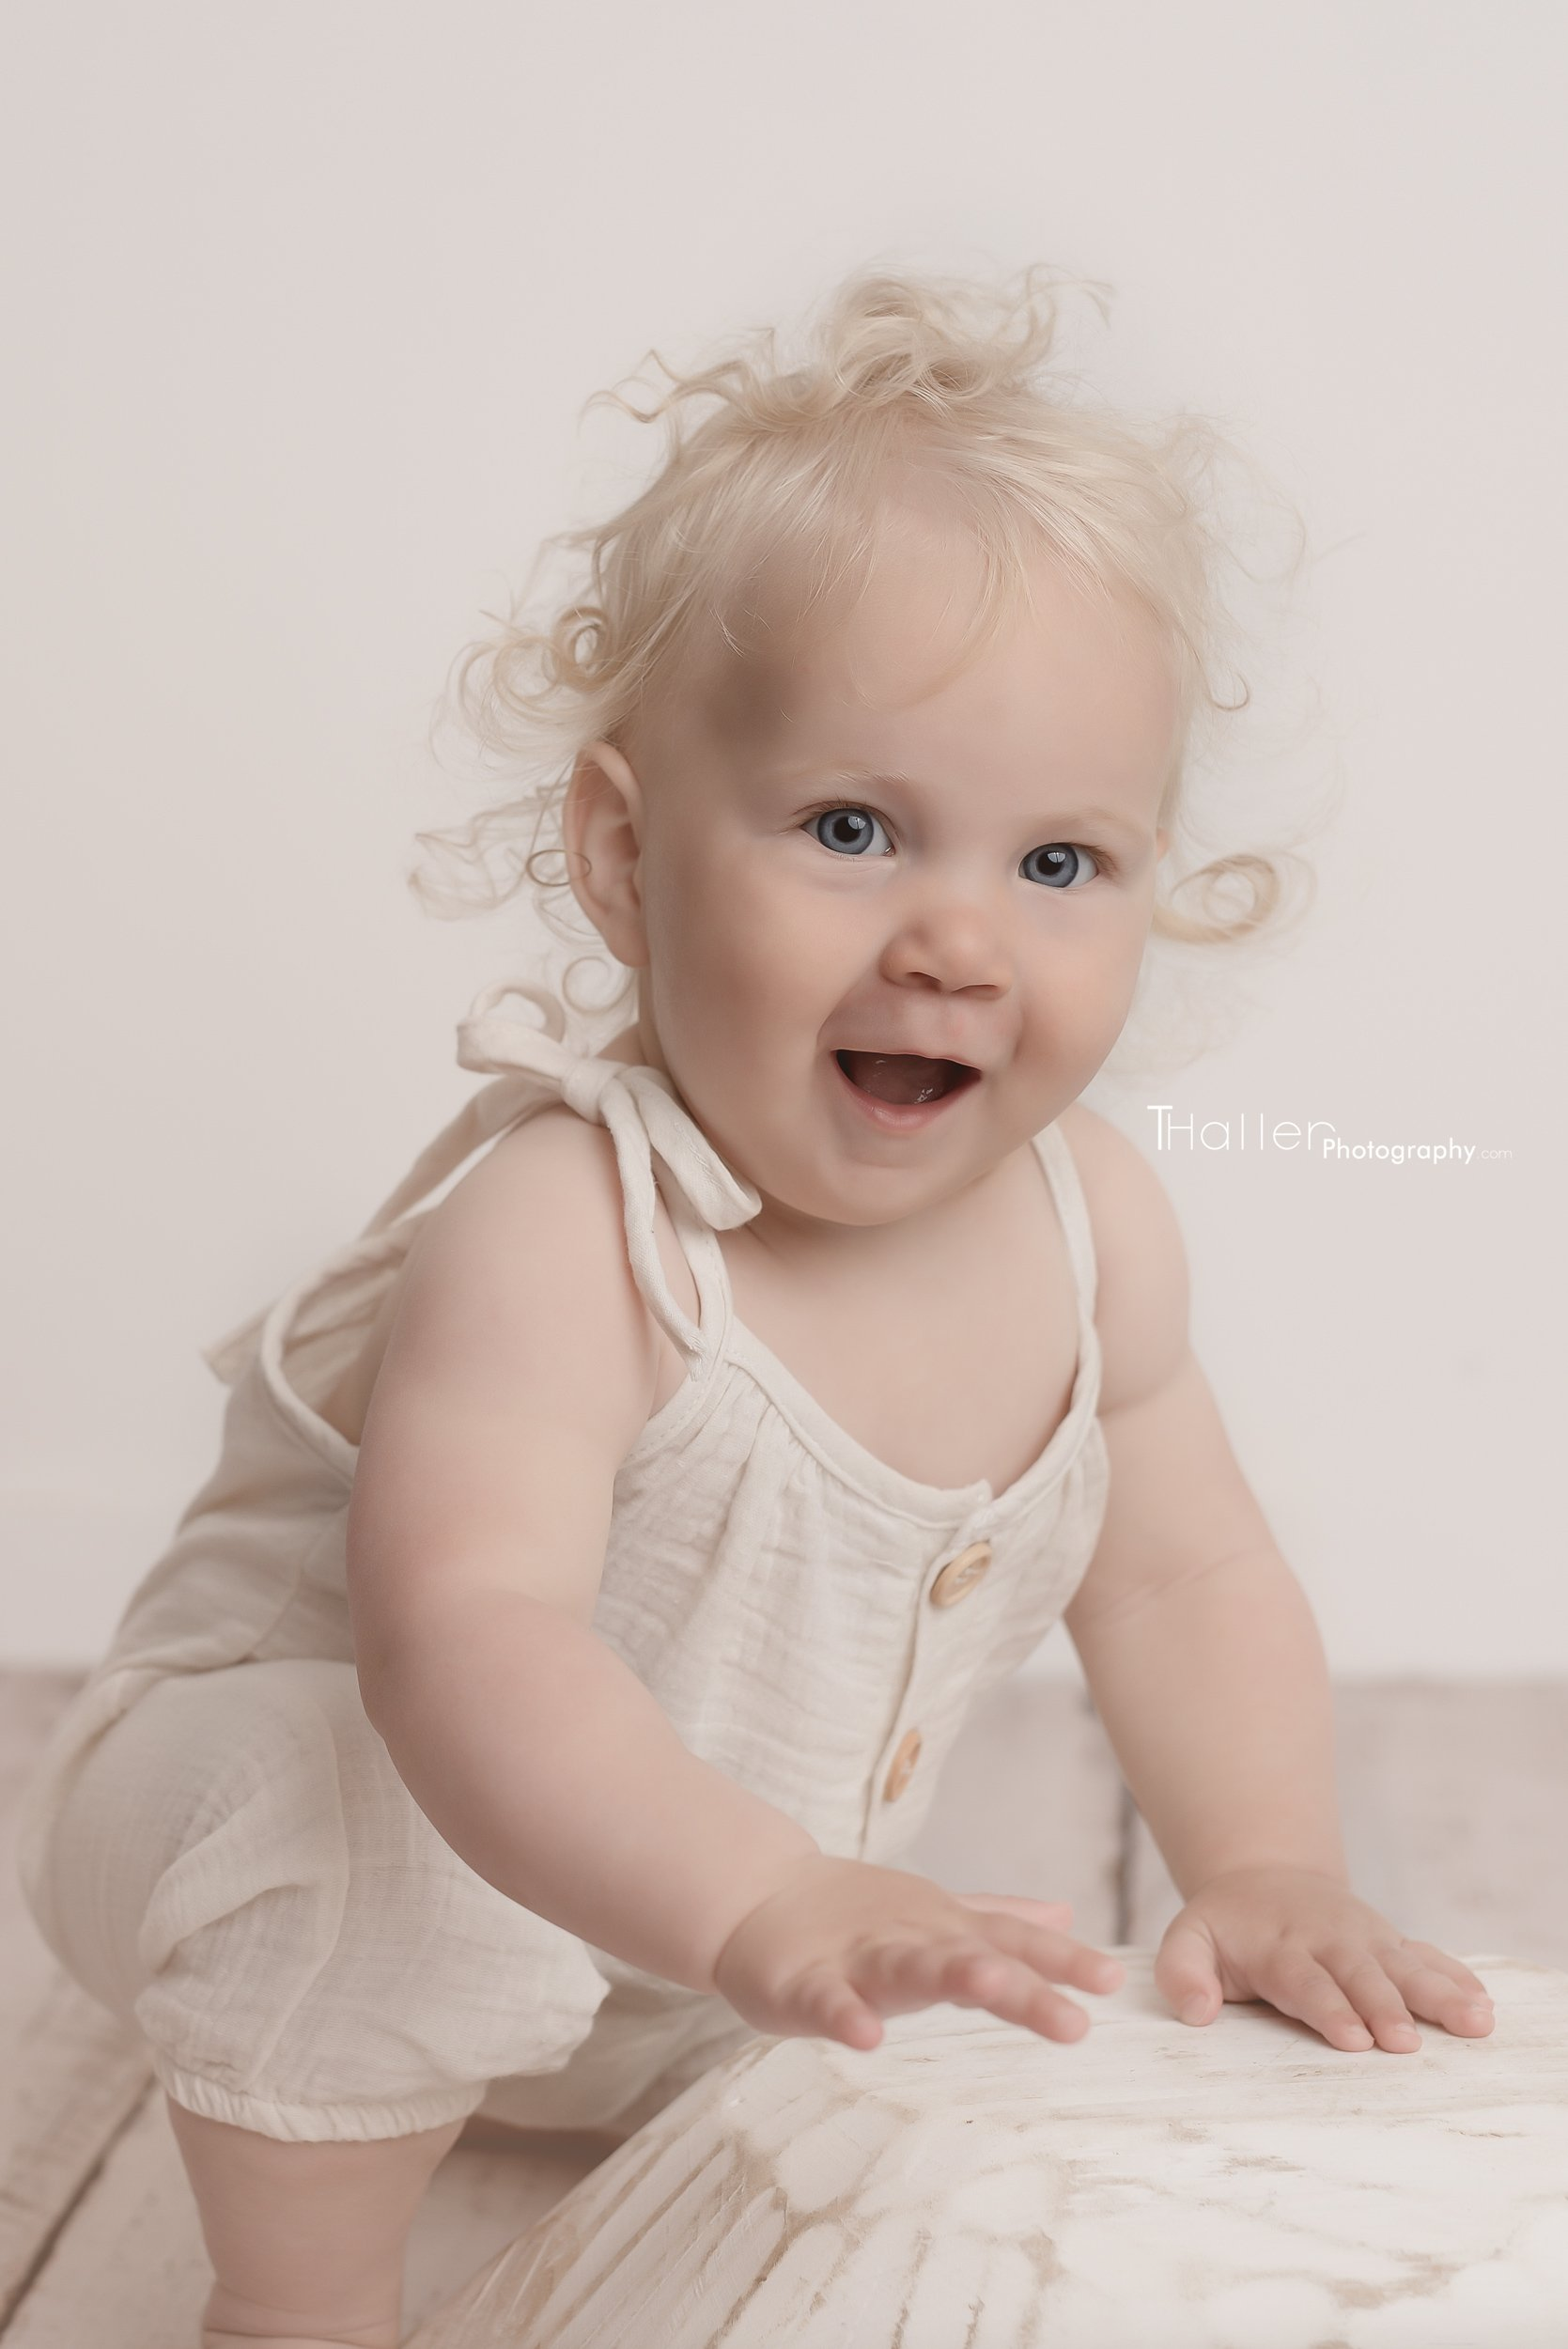 Baby, Milestone Photographer North Vancouver - Baby Girl with blond curls sitting and smiling